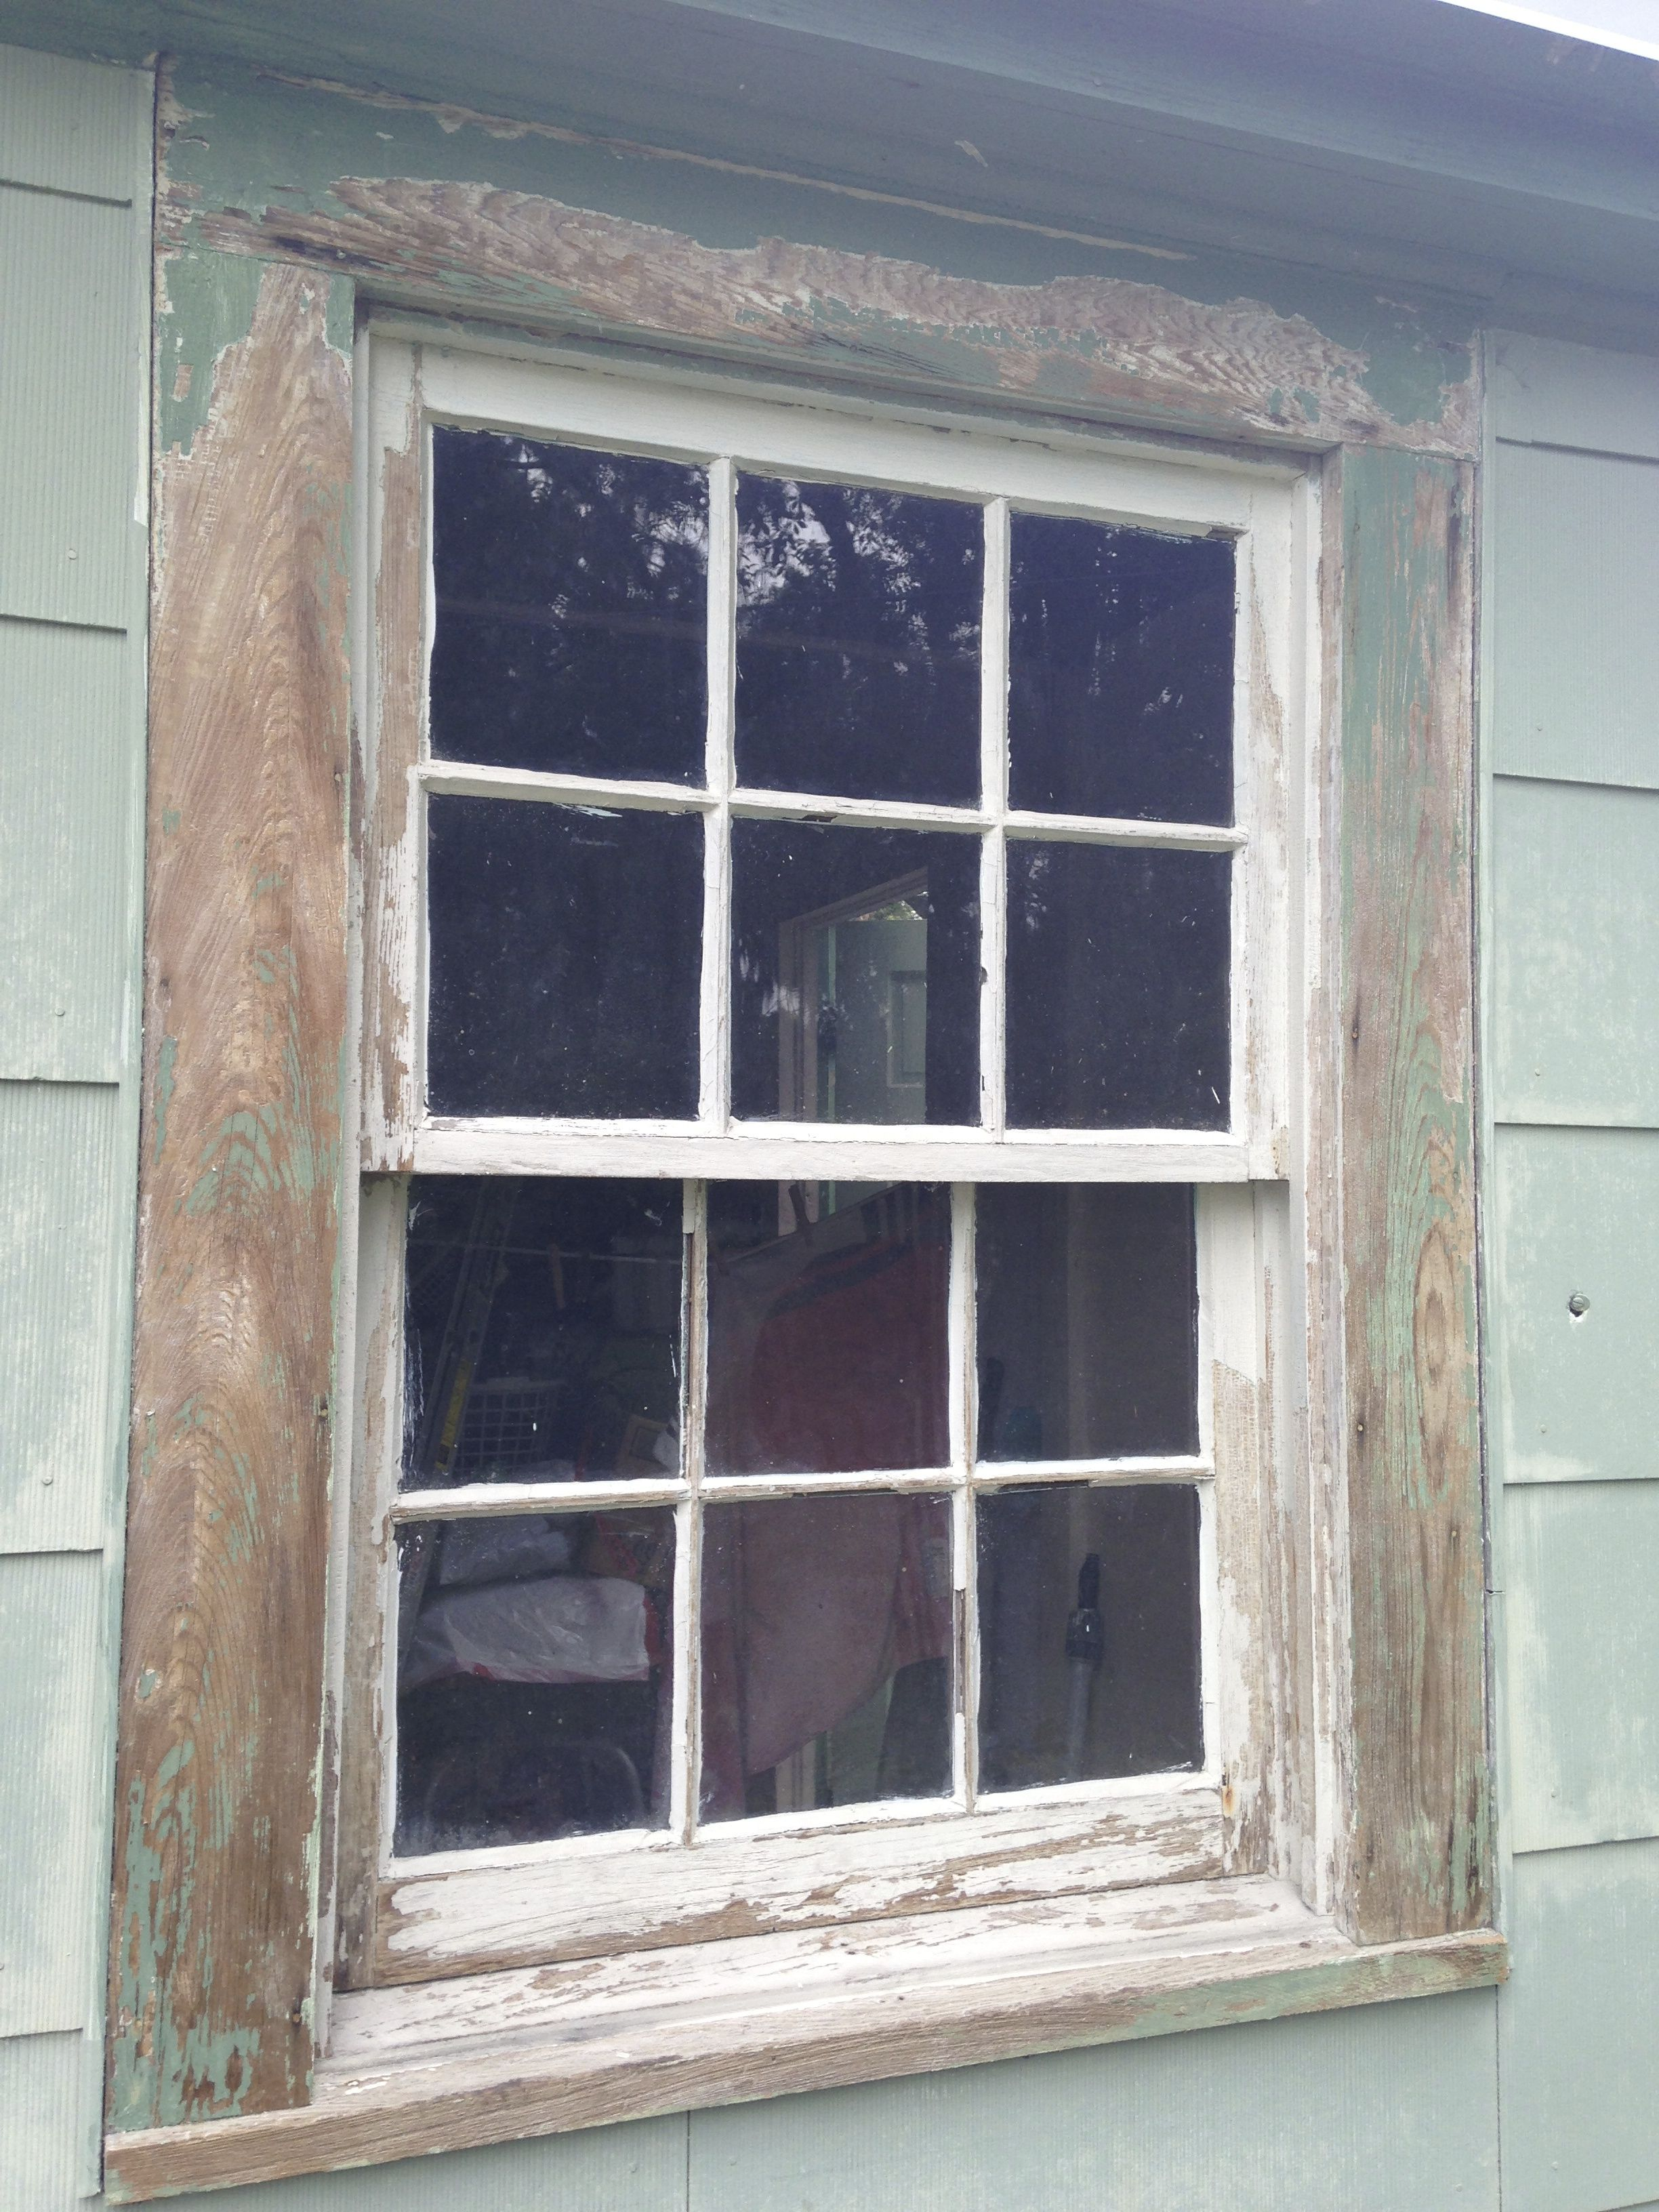 How To Paint A Wood Window Sash The Craftsman Blog Wood Windows Old Wood Windows Wooden Window Frames